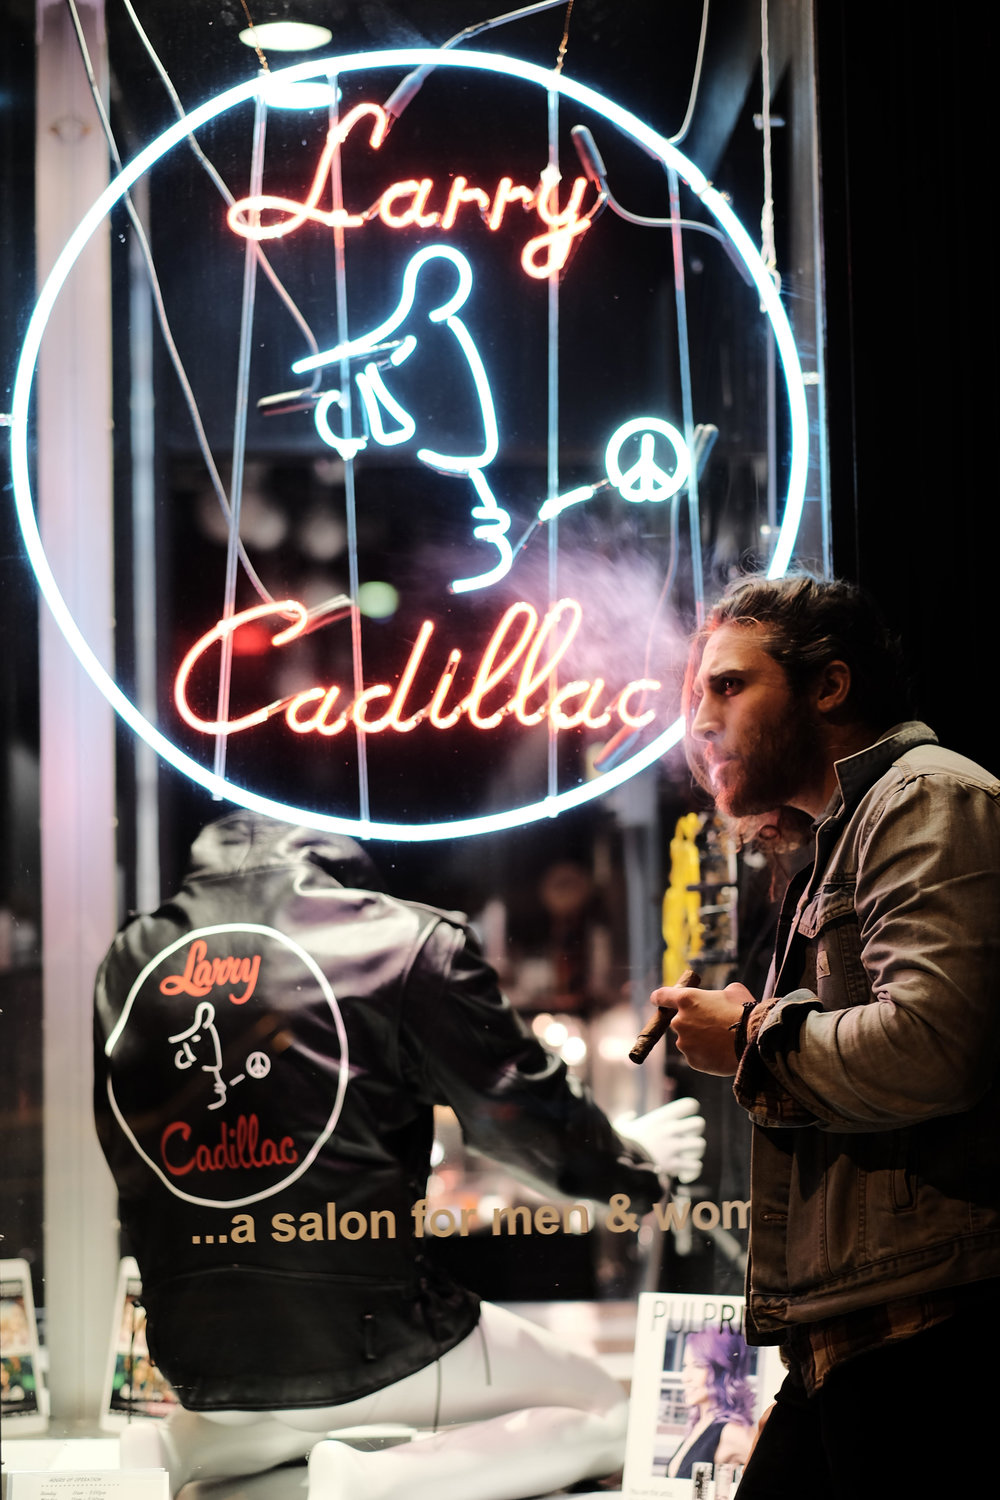 Larry Cadillac: A Salon For Men & Women